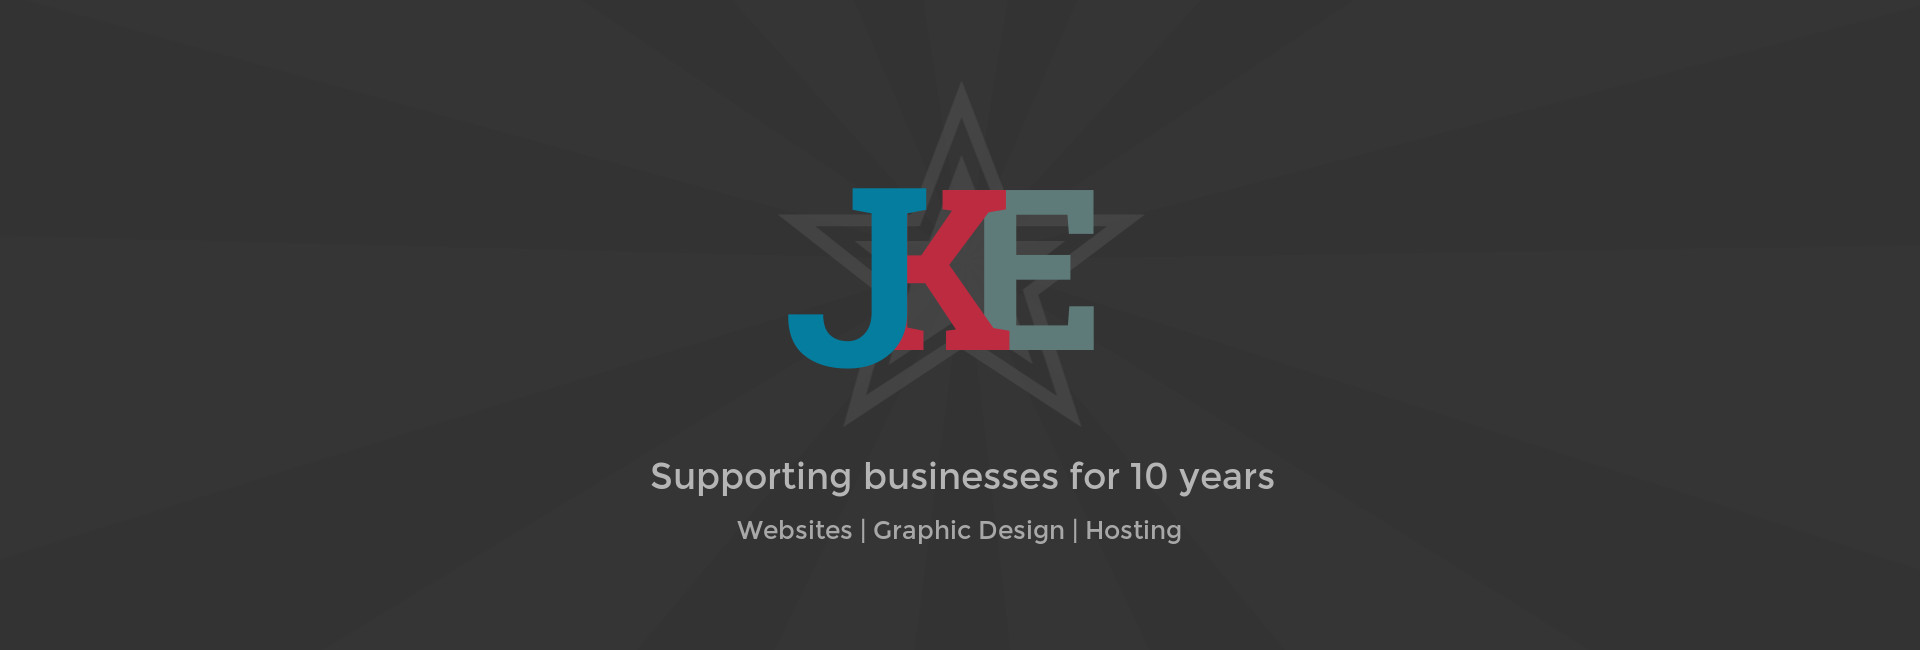 Supporting businesses for 10 years